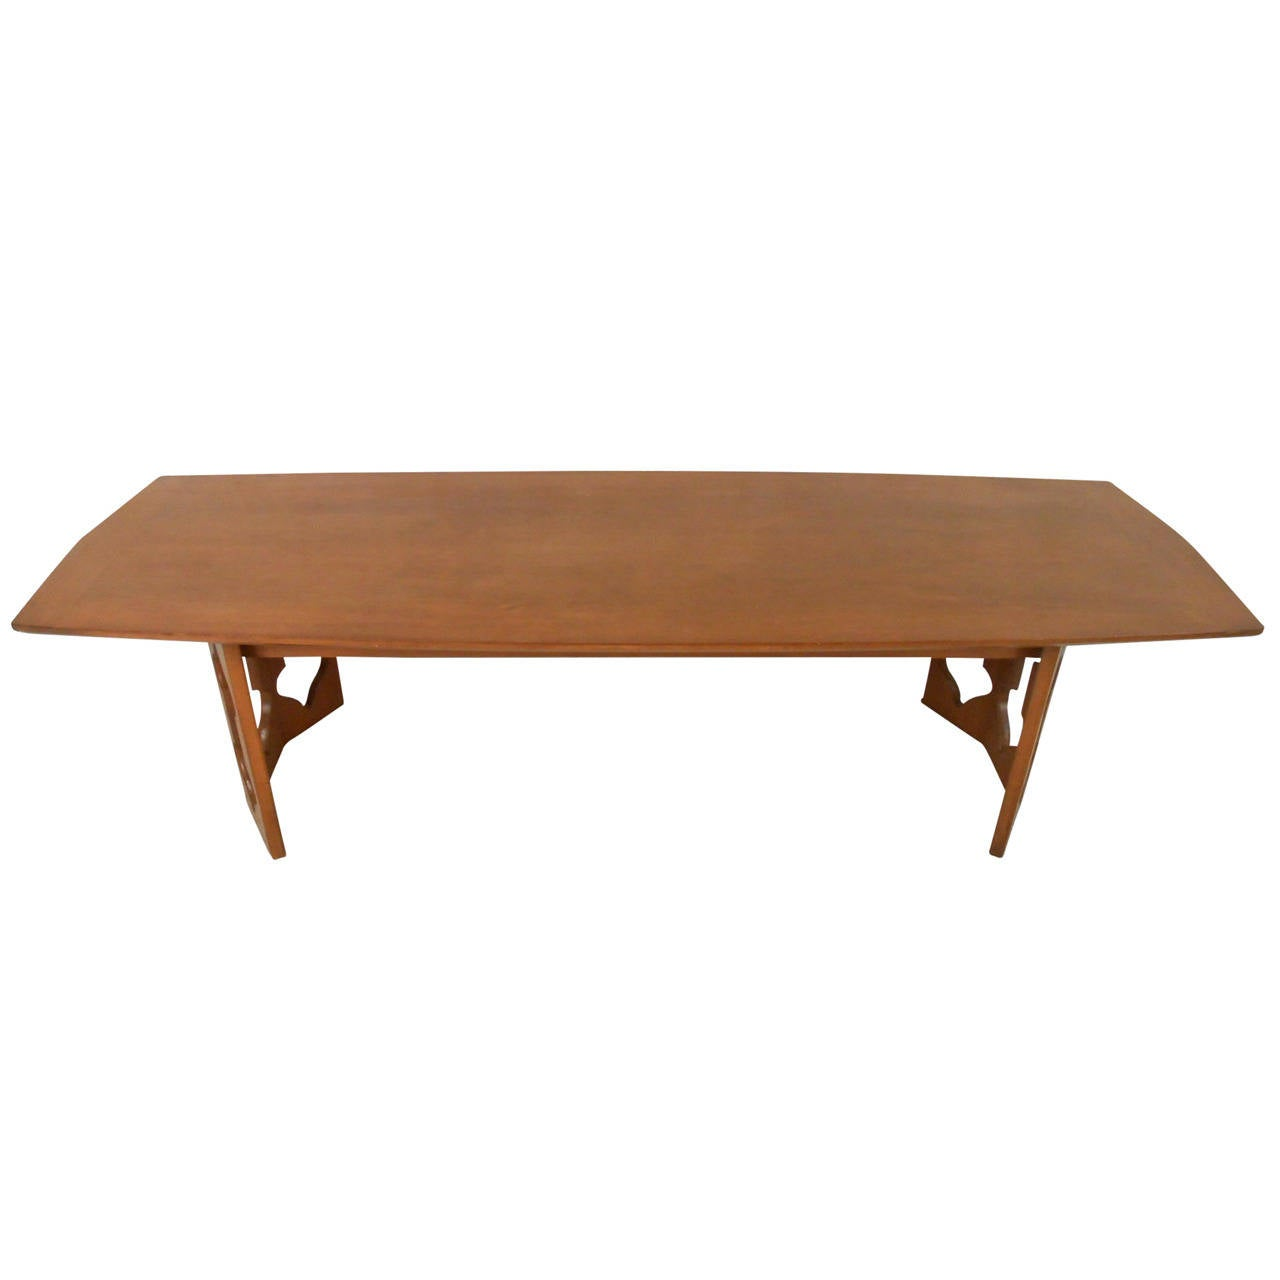 Mid century modern sculpted base coffee table for sale at for Modern coffee table for sale